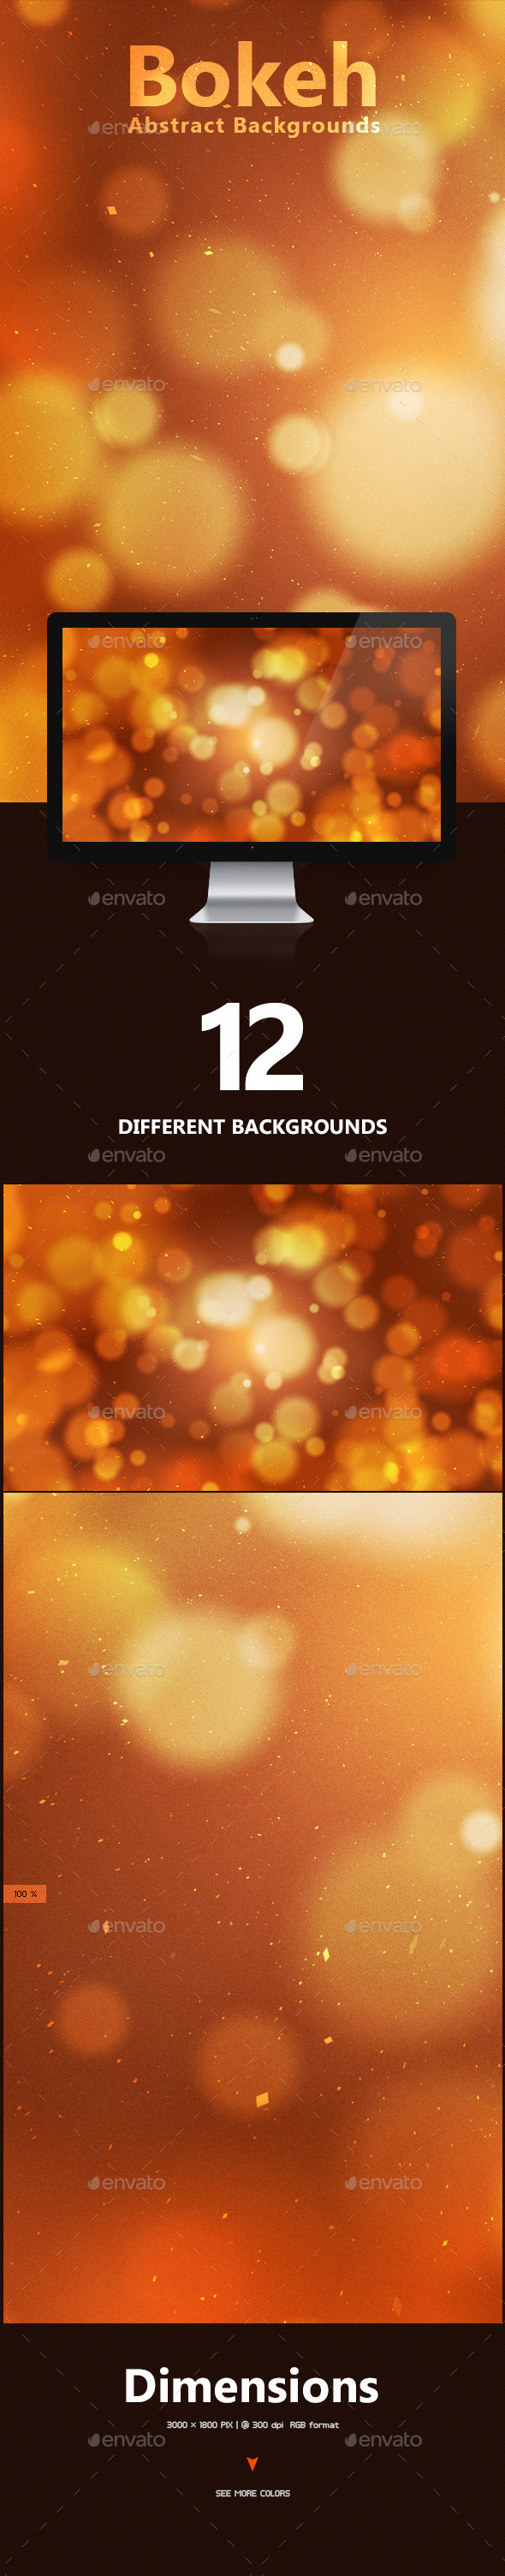 Bokeh Abstract Backgrounds - Miscellaneous Backgrounds